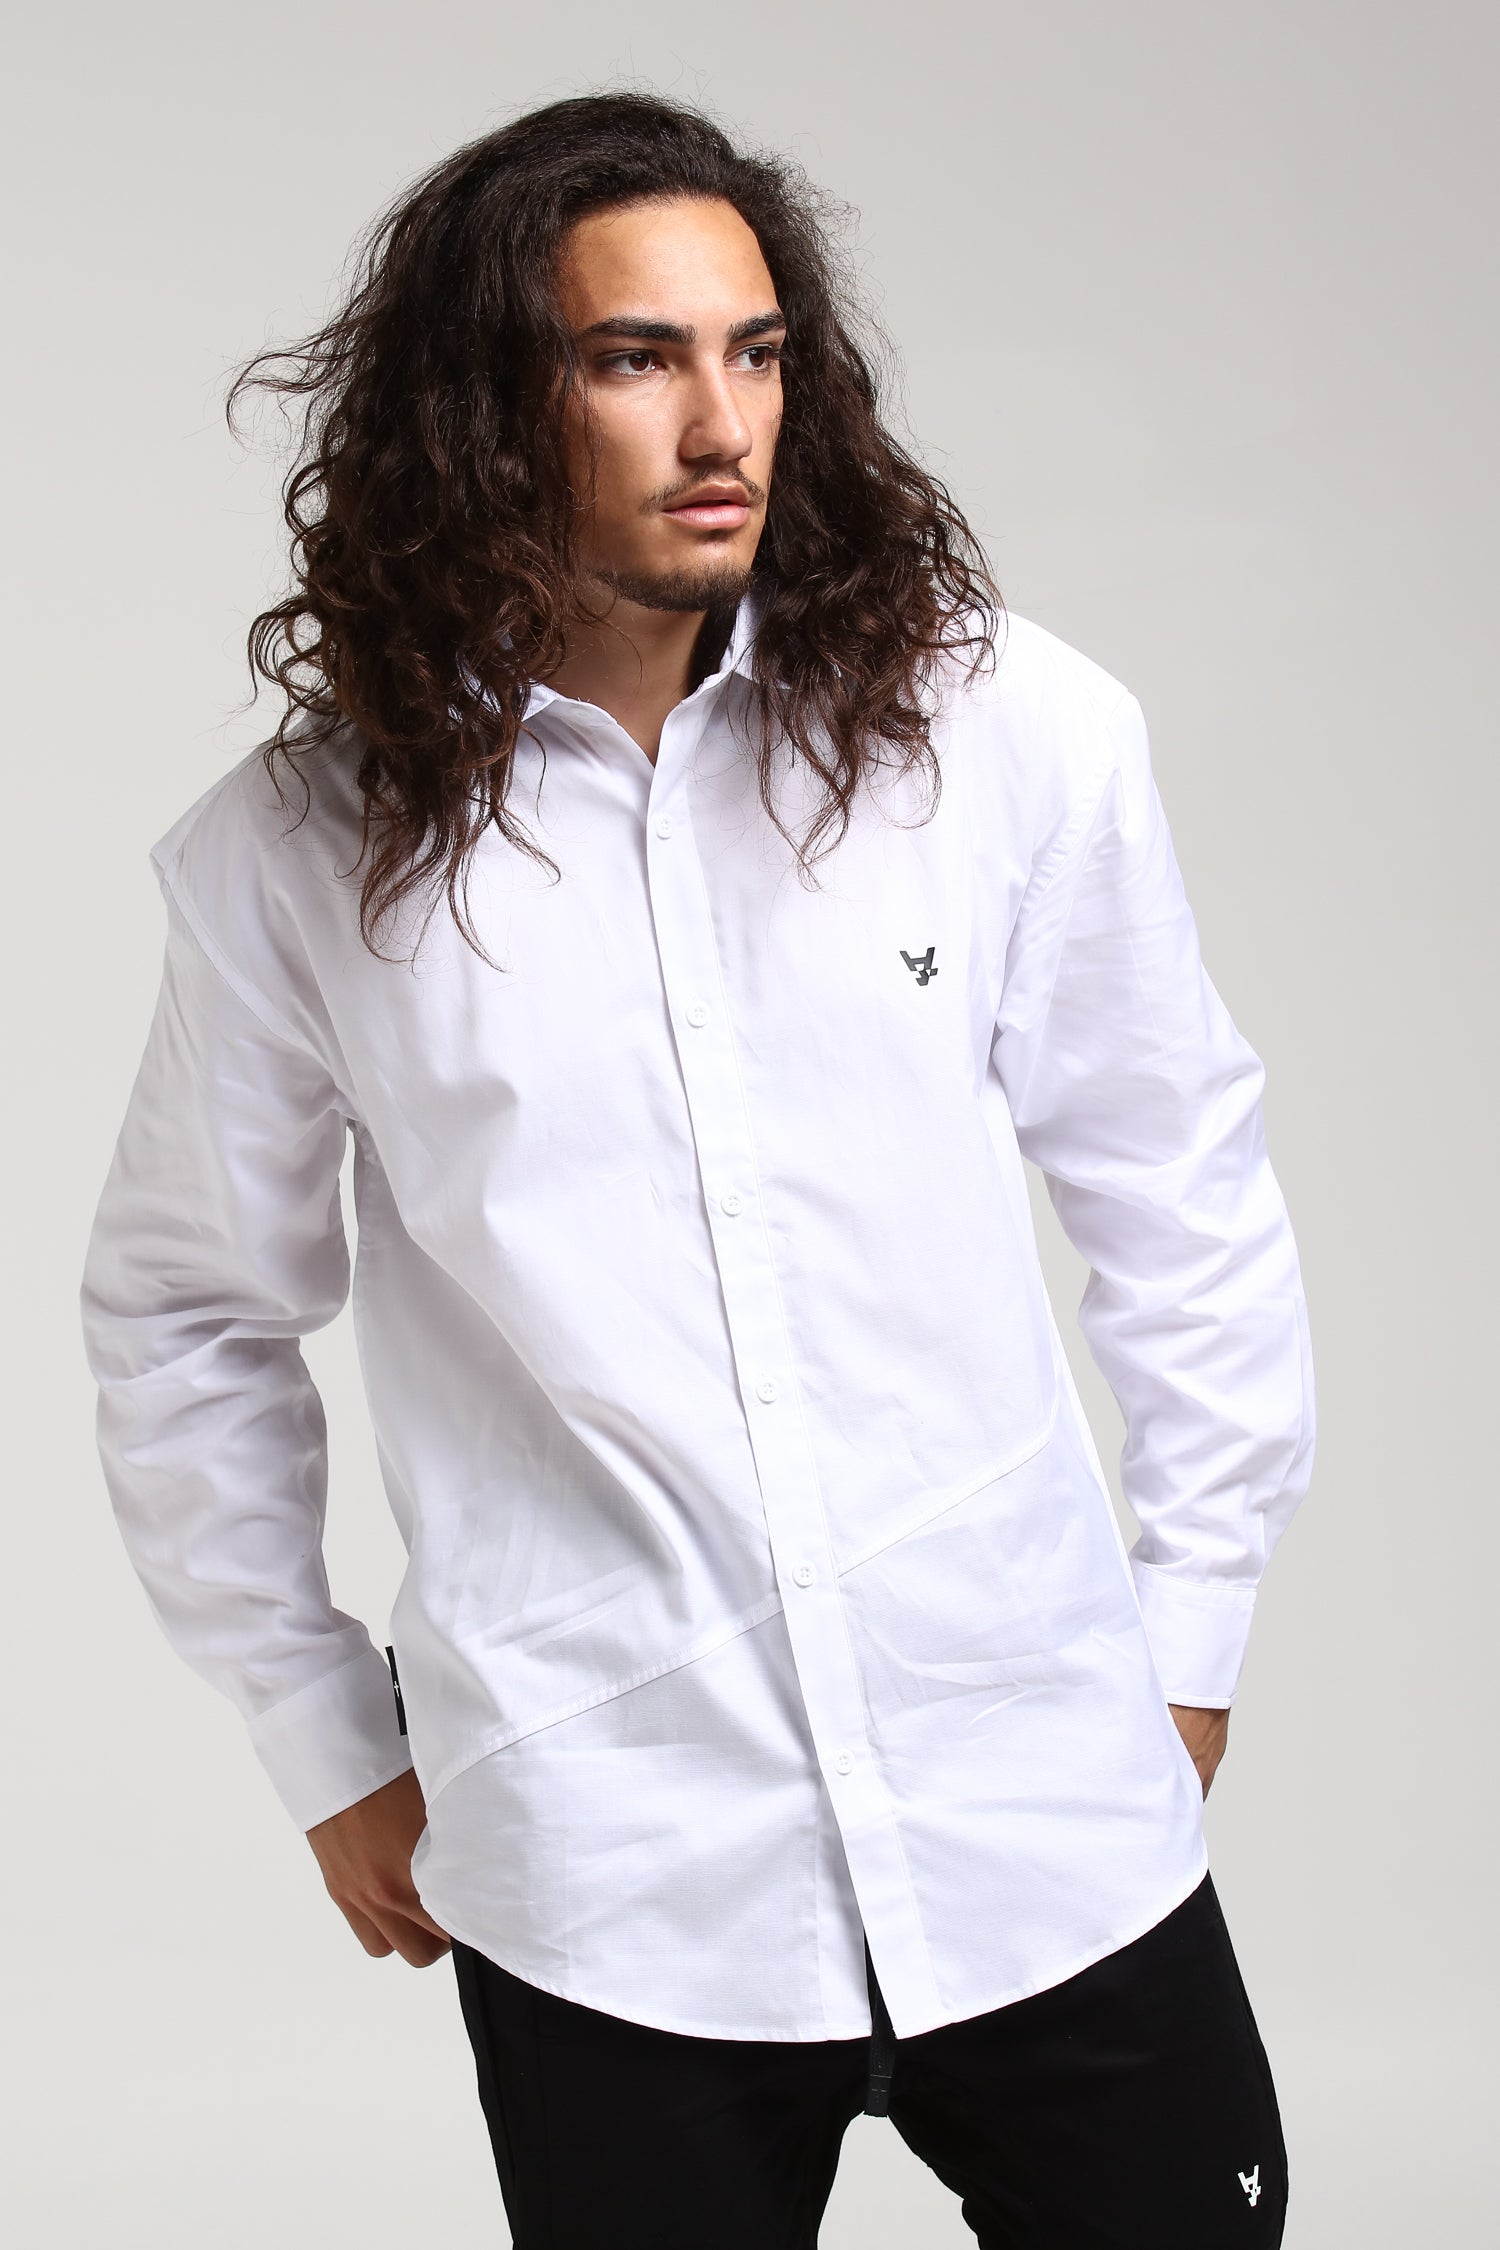 NON FORMAL L/S SHIRT - White